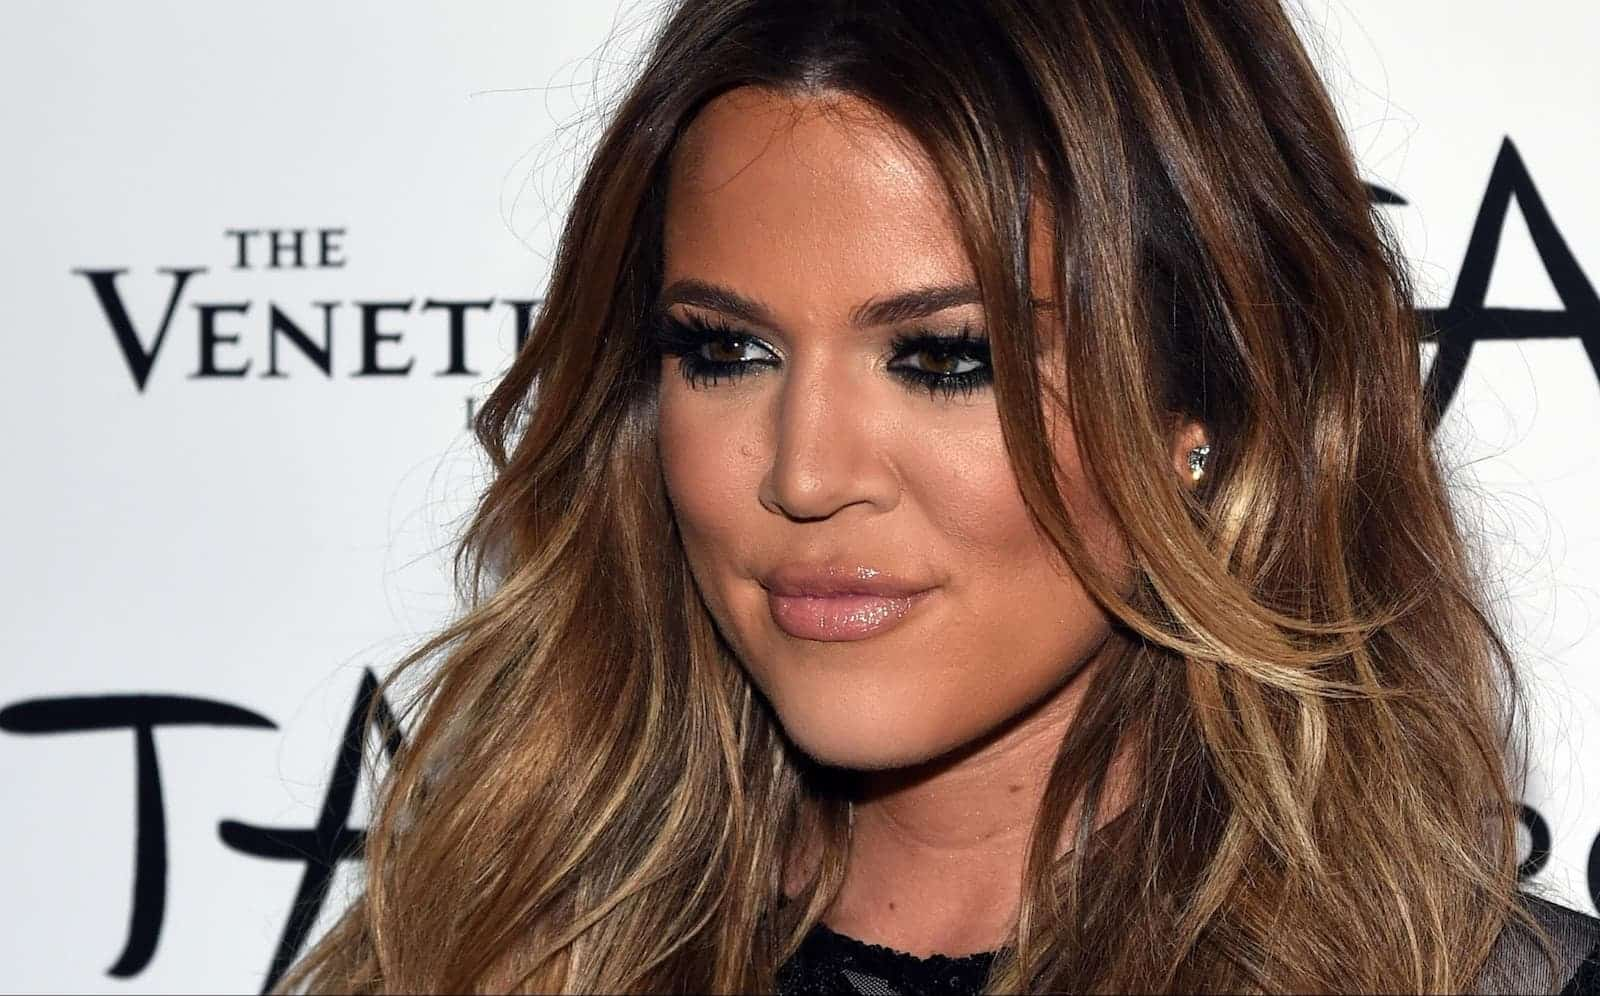 Celebrity Talent - Khloe Kardashian - Paparazzi - Celebrity Rider